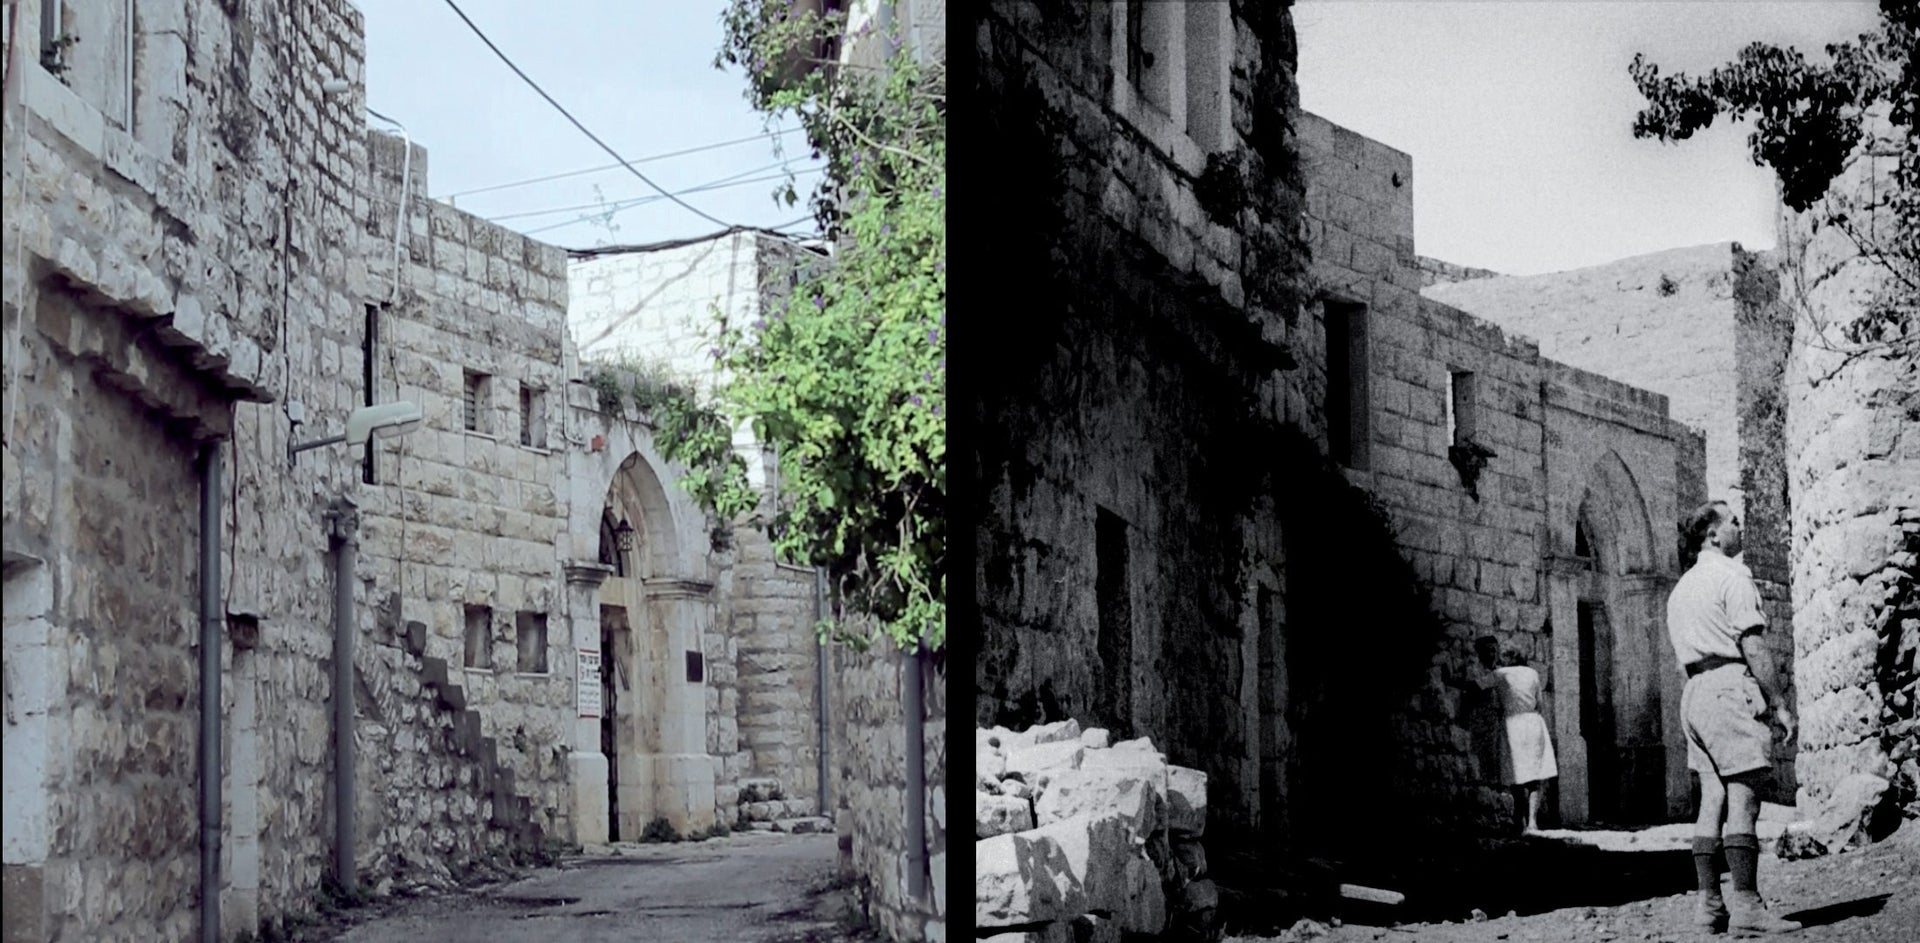 A street in Deir Yassin, today and in 1948. 'Within a few hours, half the village wasn't there any more,' Zettler wrote of the day.